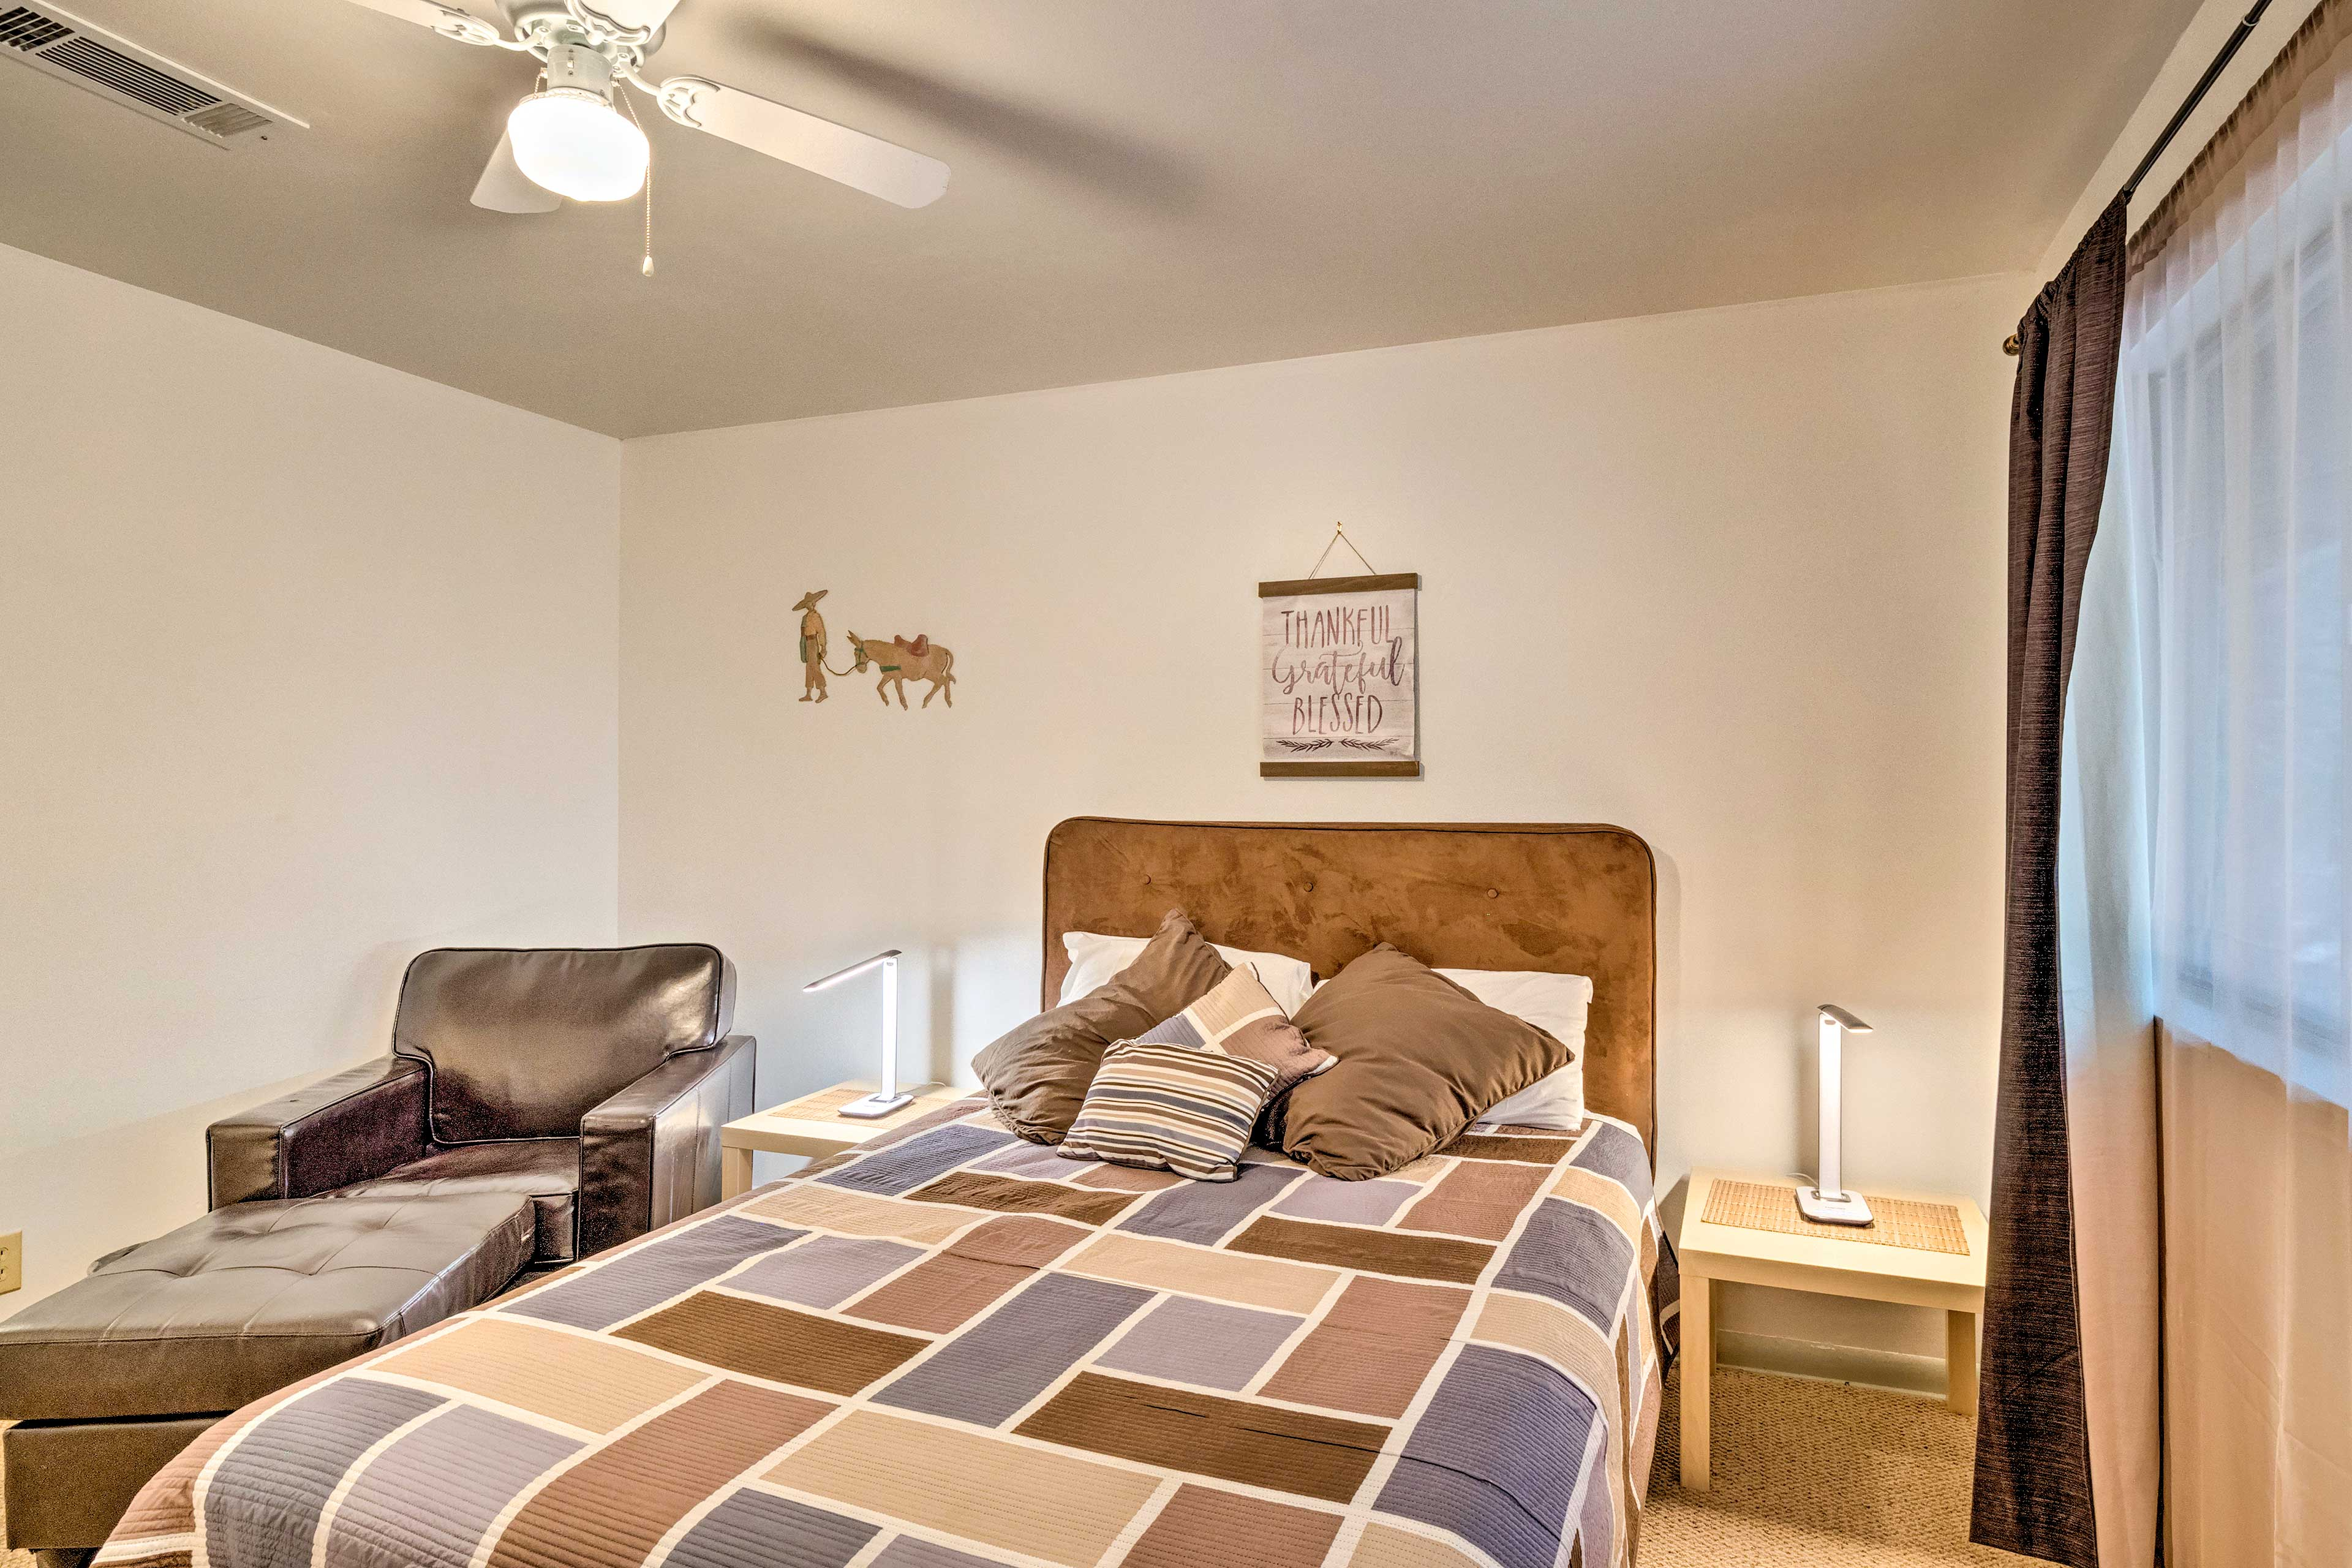 You will have everything you need in bedroom 2 to feel at peace.